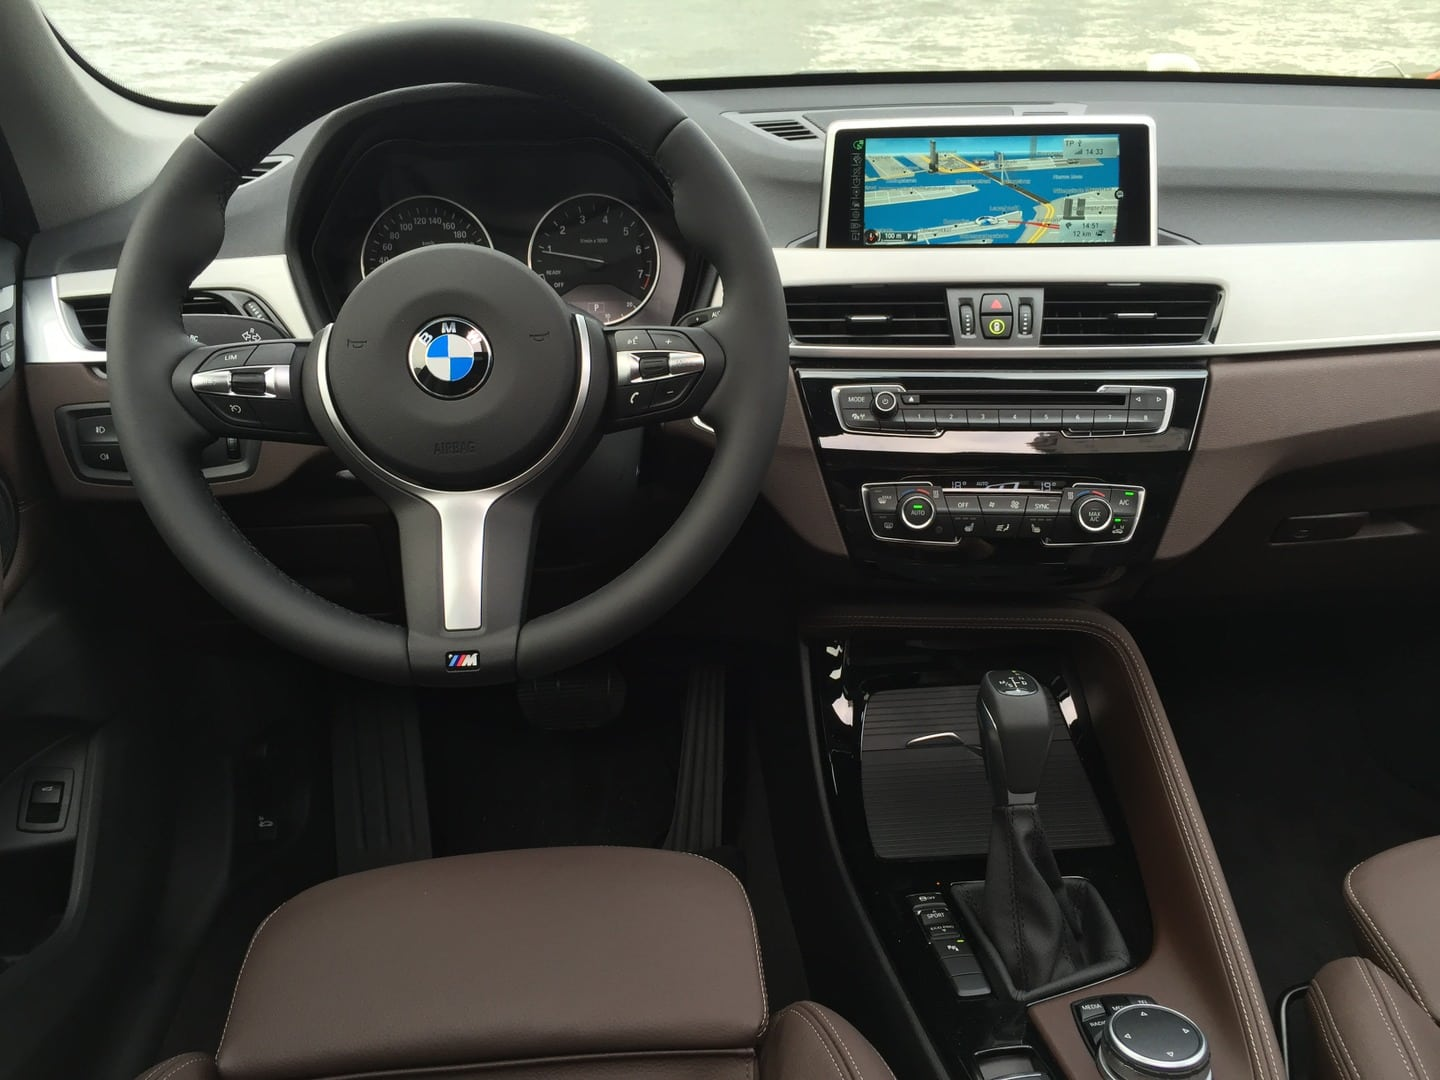 Opinions And Advice Requested Re Mocha Leather Interior Bmw X1 Forum